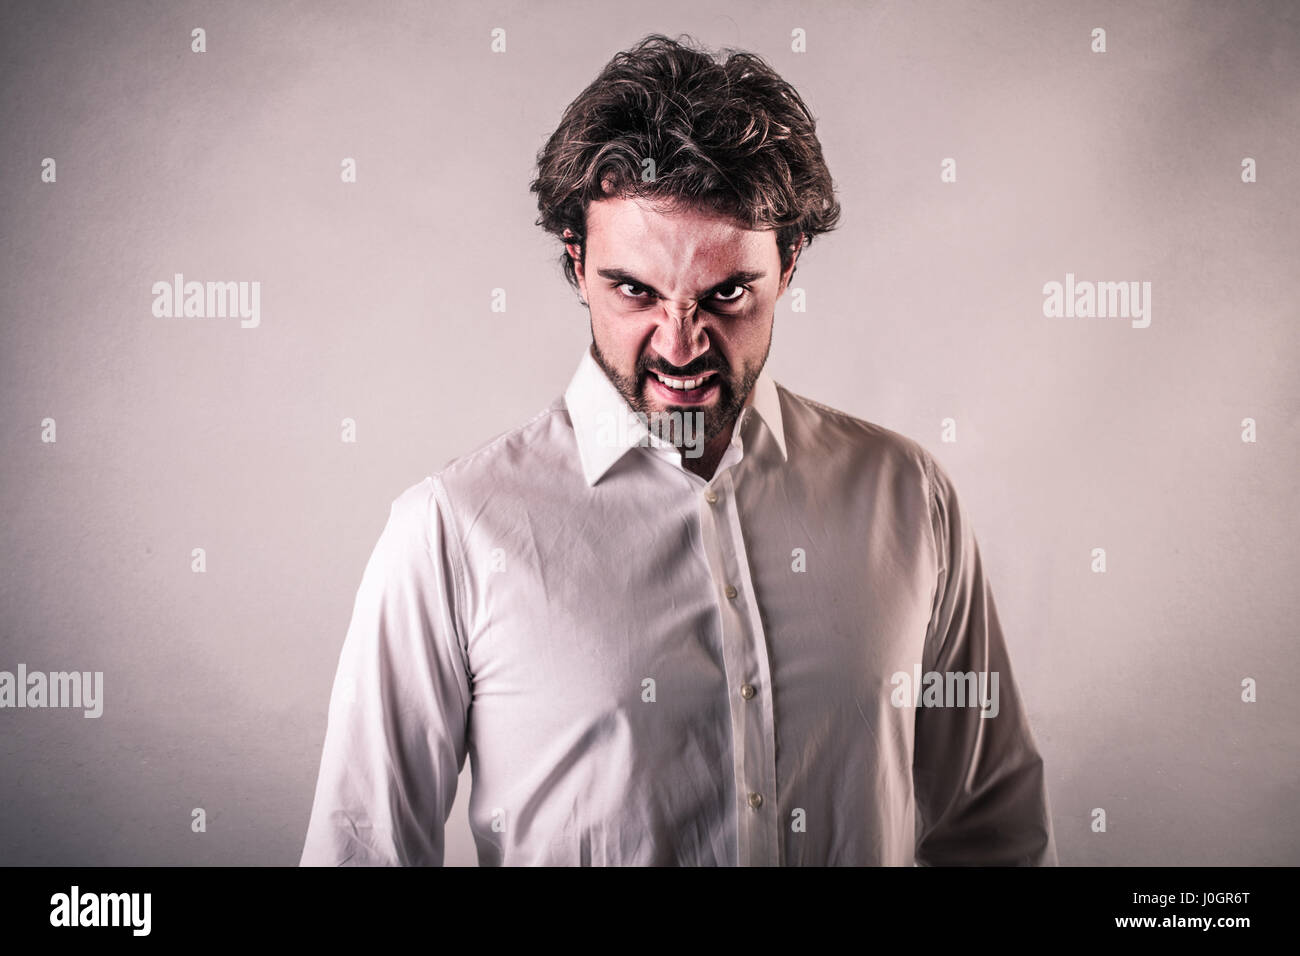 Man making grimace - Stock Image